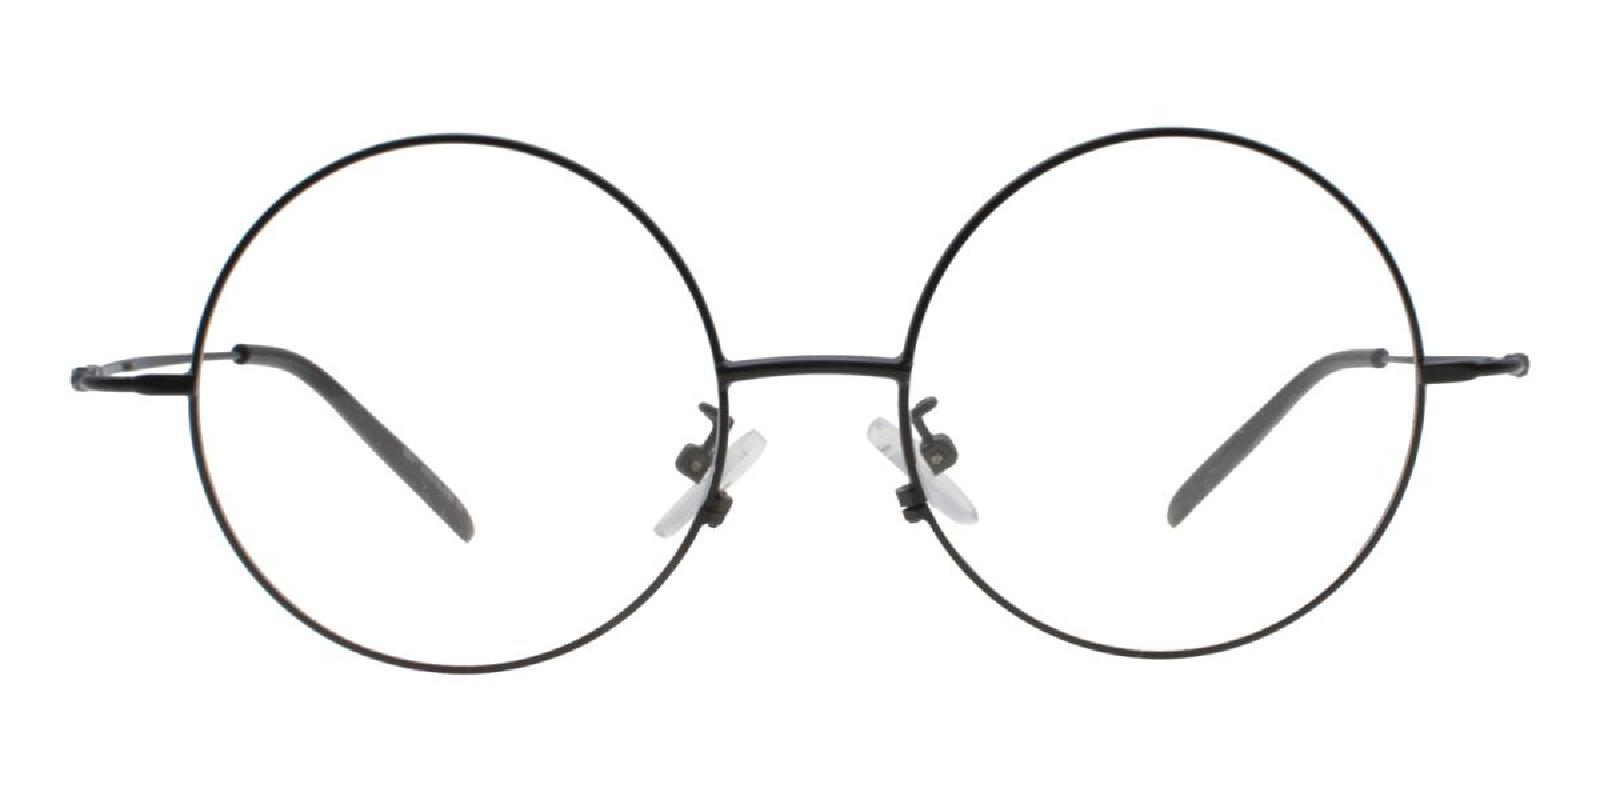 Lily-Black-Round-Acetate / Metal-Eyeglasses-additional2